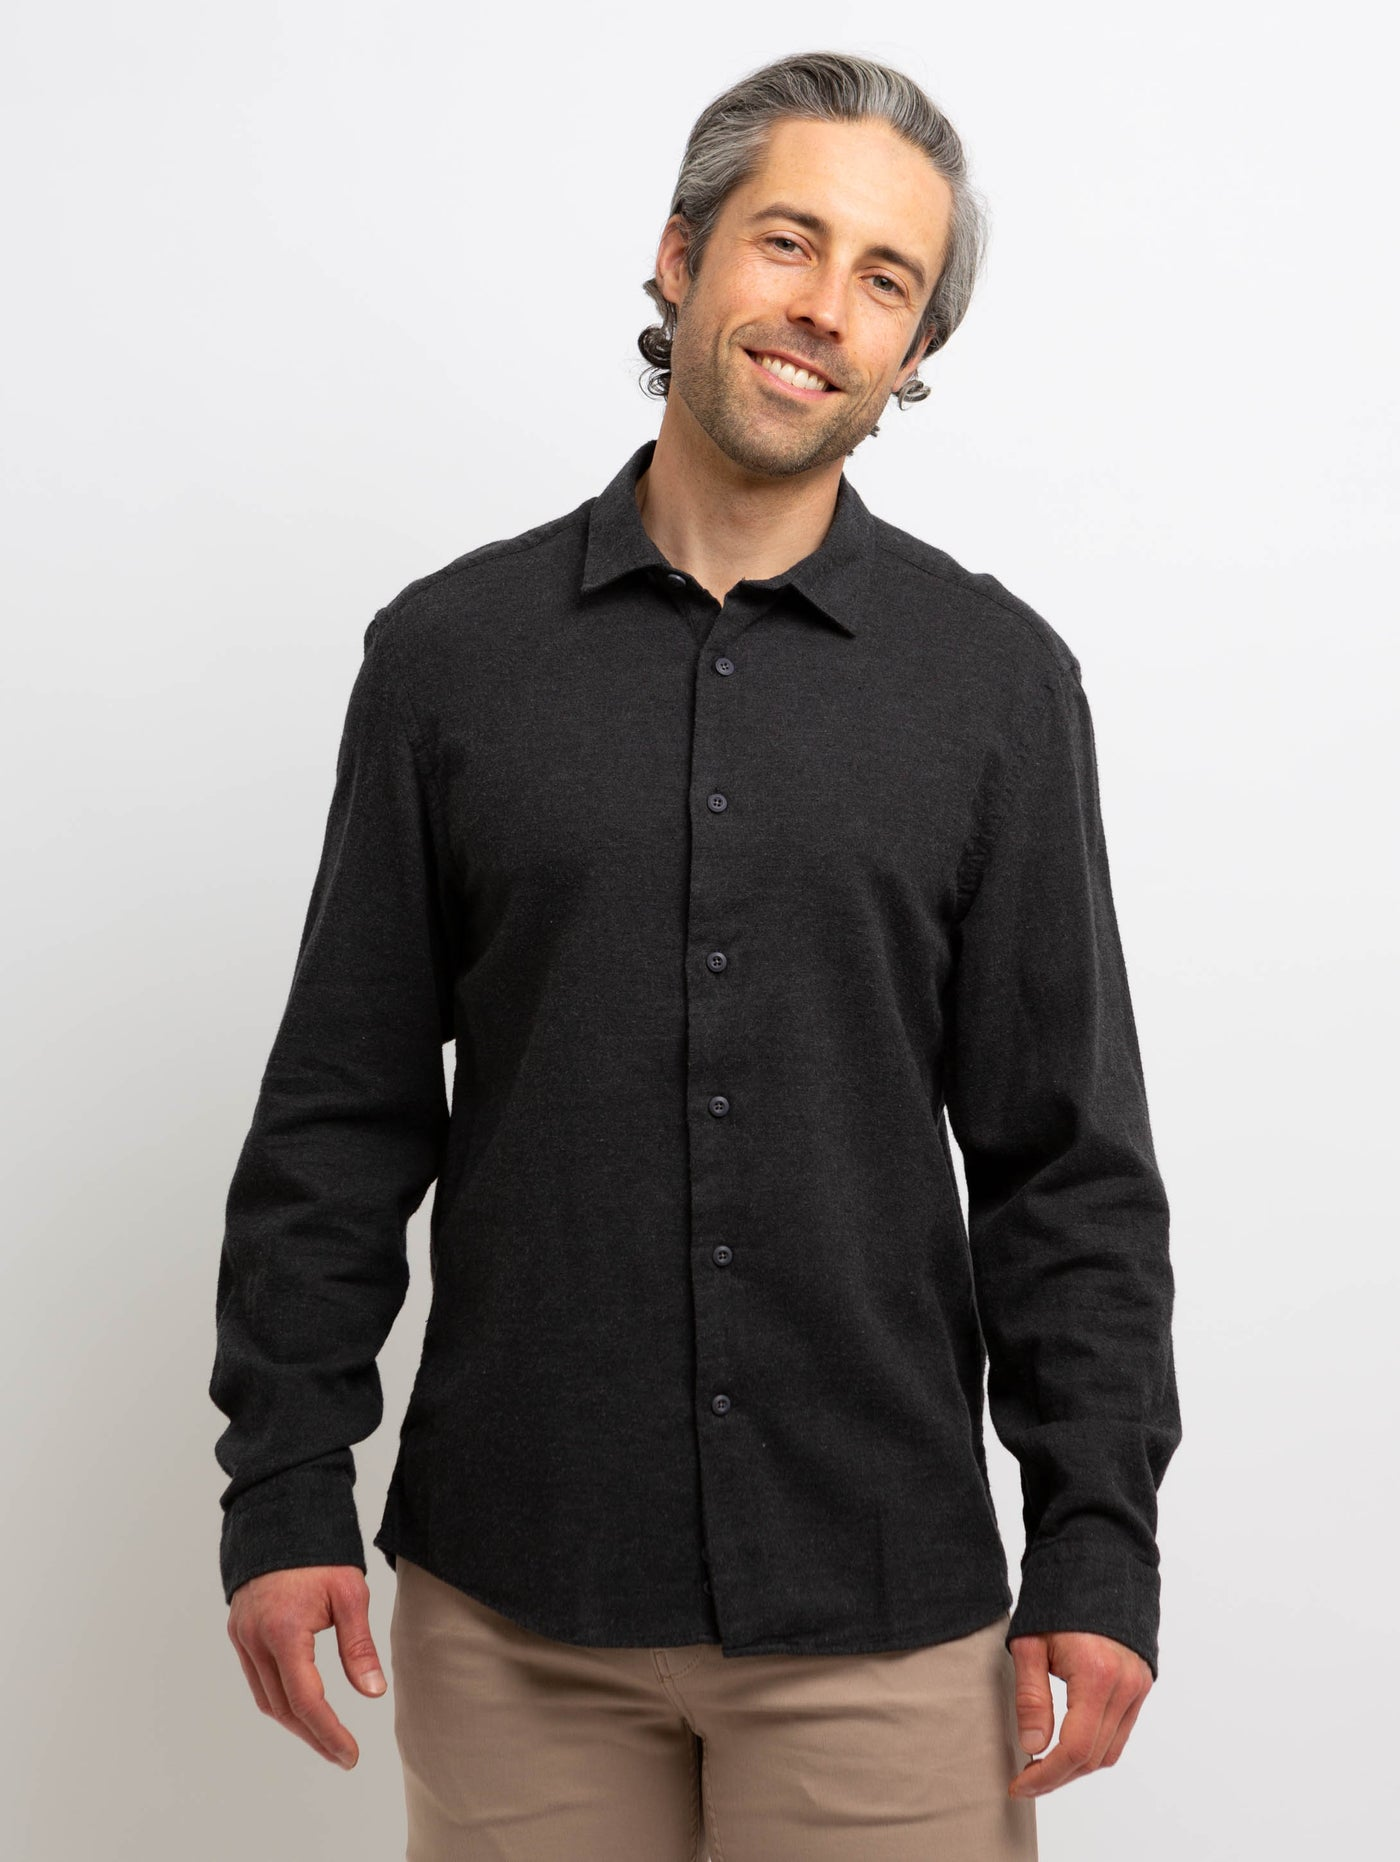 Redford Woven Button Down Shirt - Charcoal-Benson-Over the Rainbow